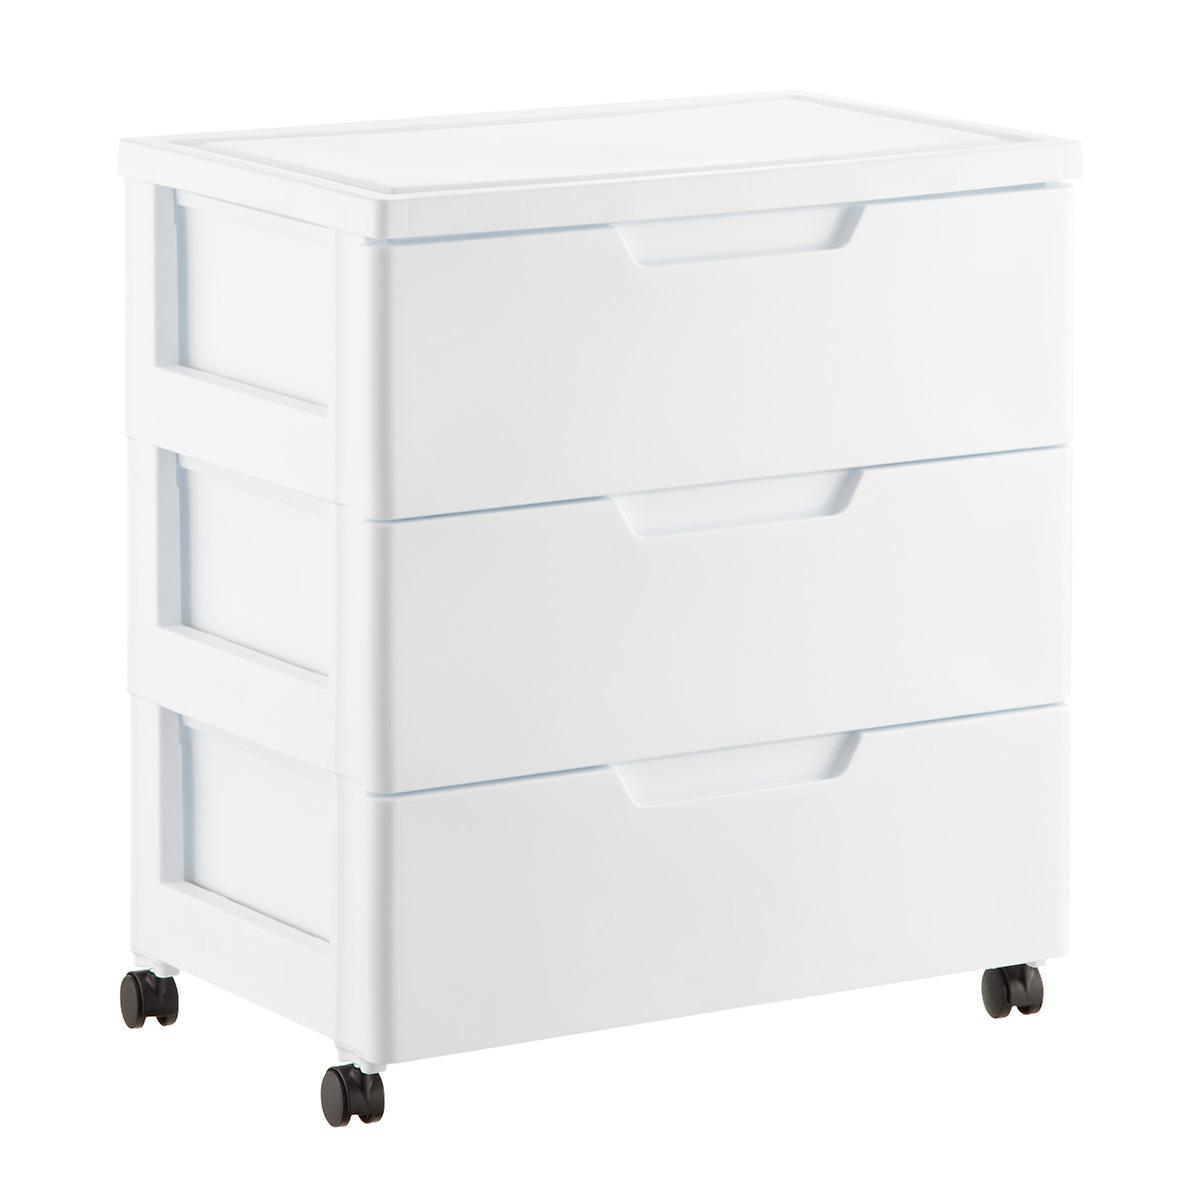 wooden kitchen home cabinet amazon uk for four storage treats co bathroom dp or cupboard white ideal with bedroom drawers